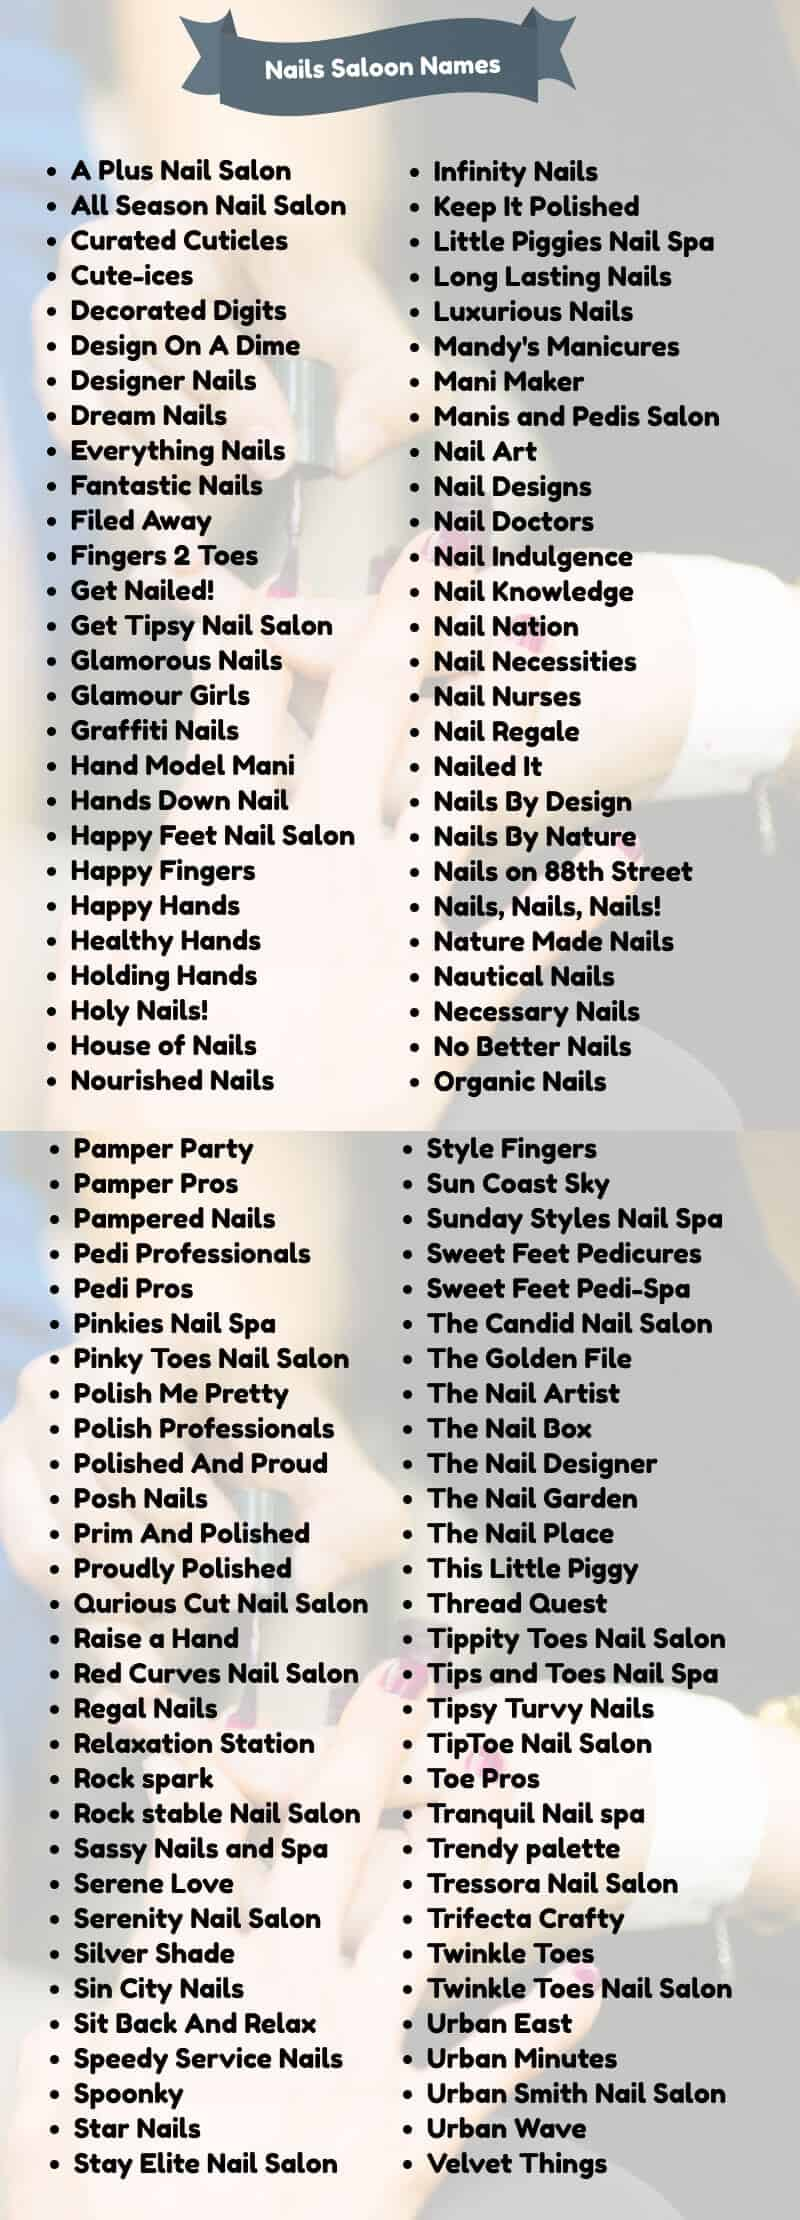 17+ Classy Nail Salon Names for Your Business